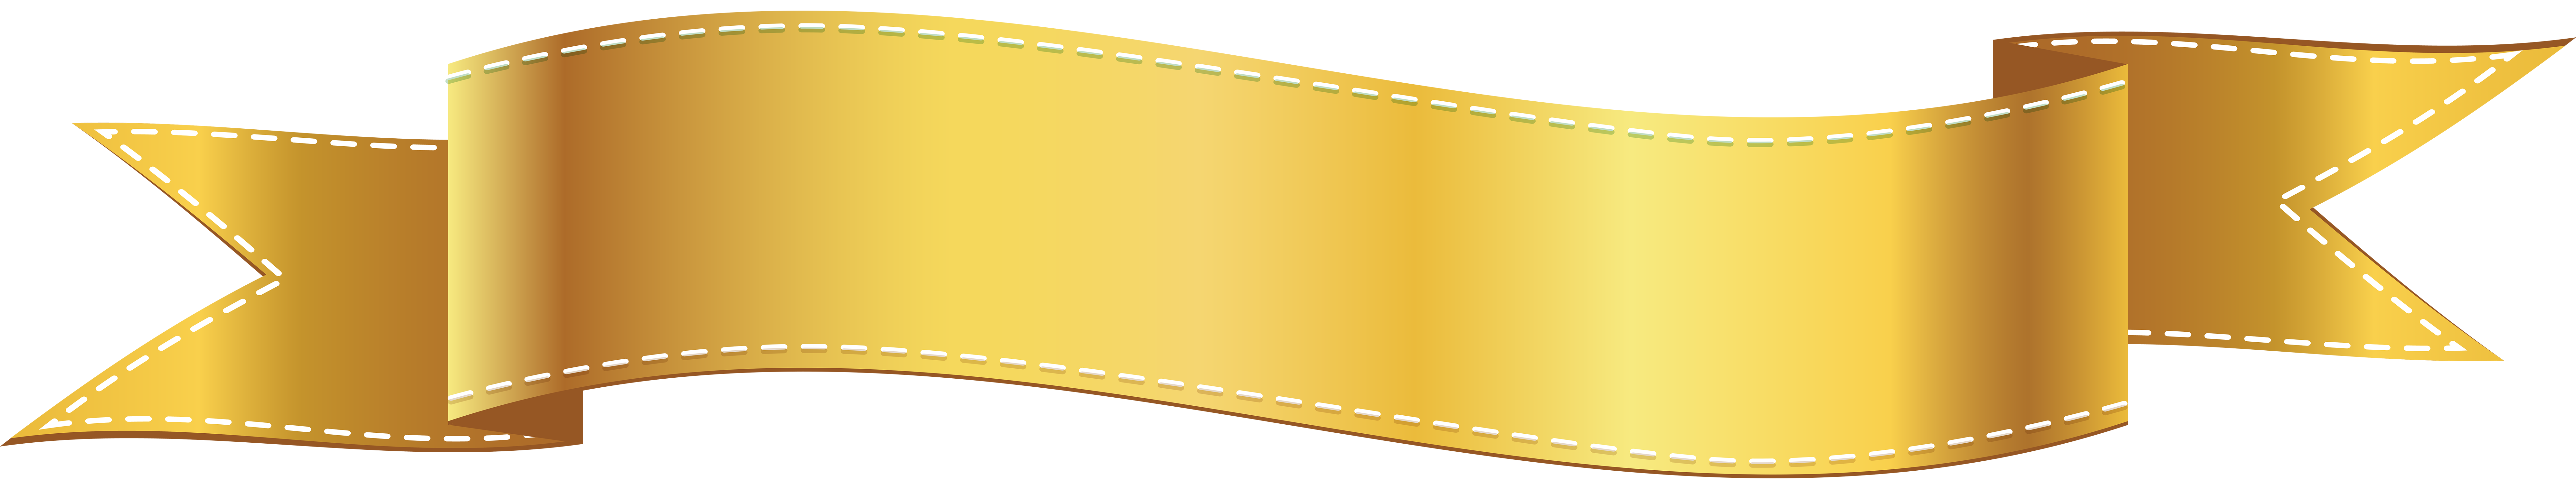 Free Yellow Banner Png, Download Free Clip Art, Free Clip.